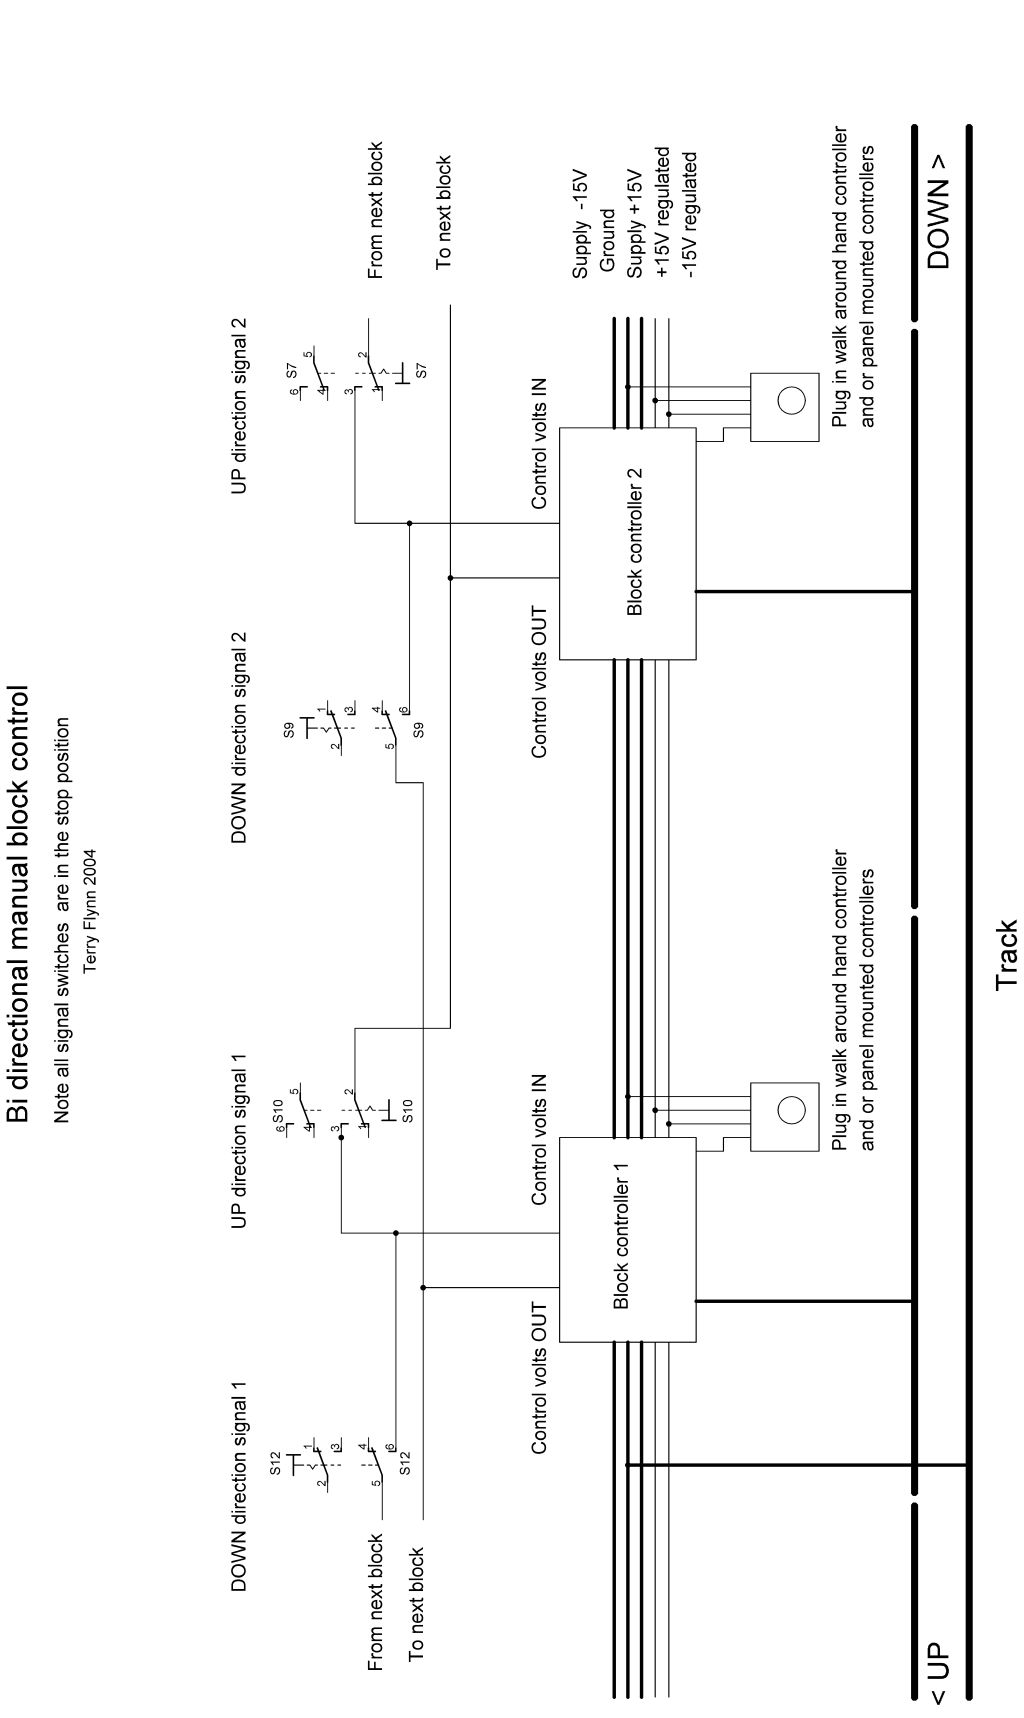 Bs2 Wiring Diagram Auto Electrical Battery With Kickstart Cab Control Two Power Supplies Dc